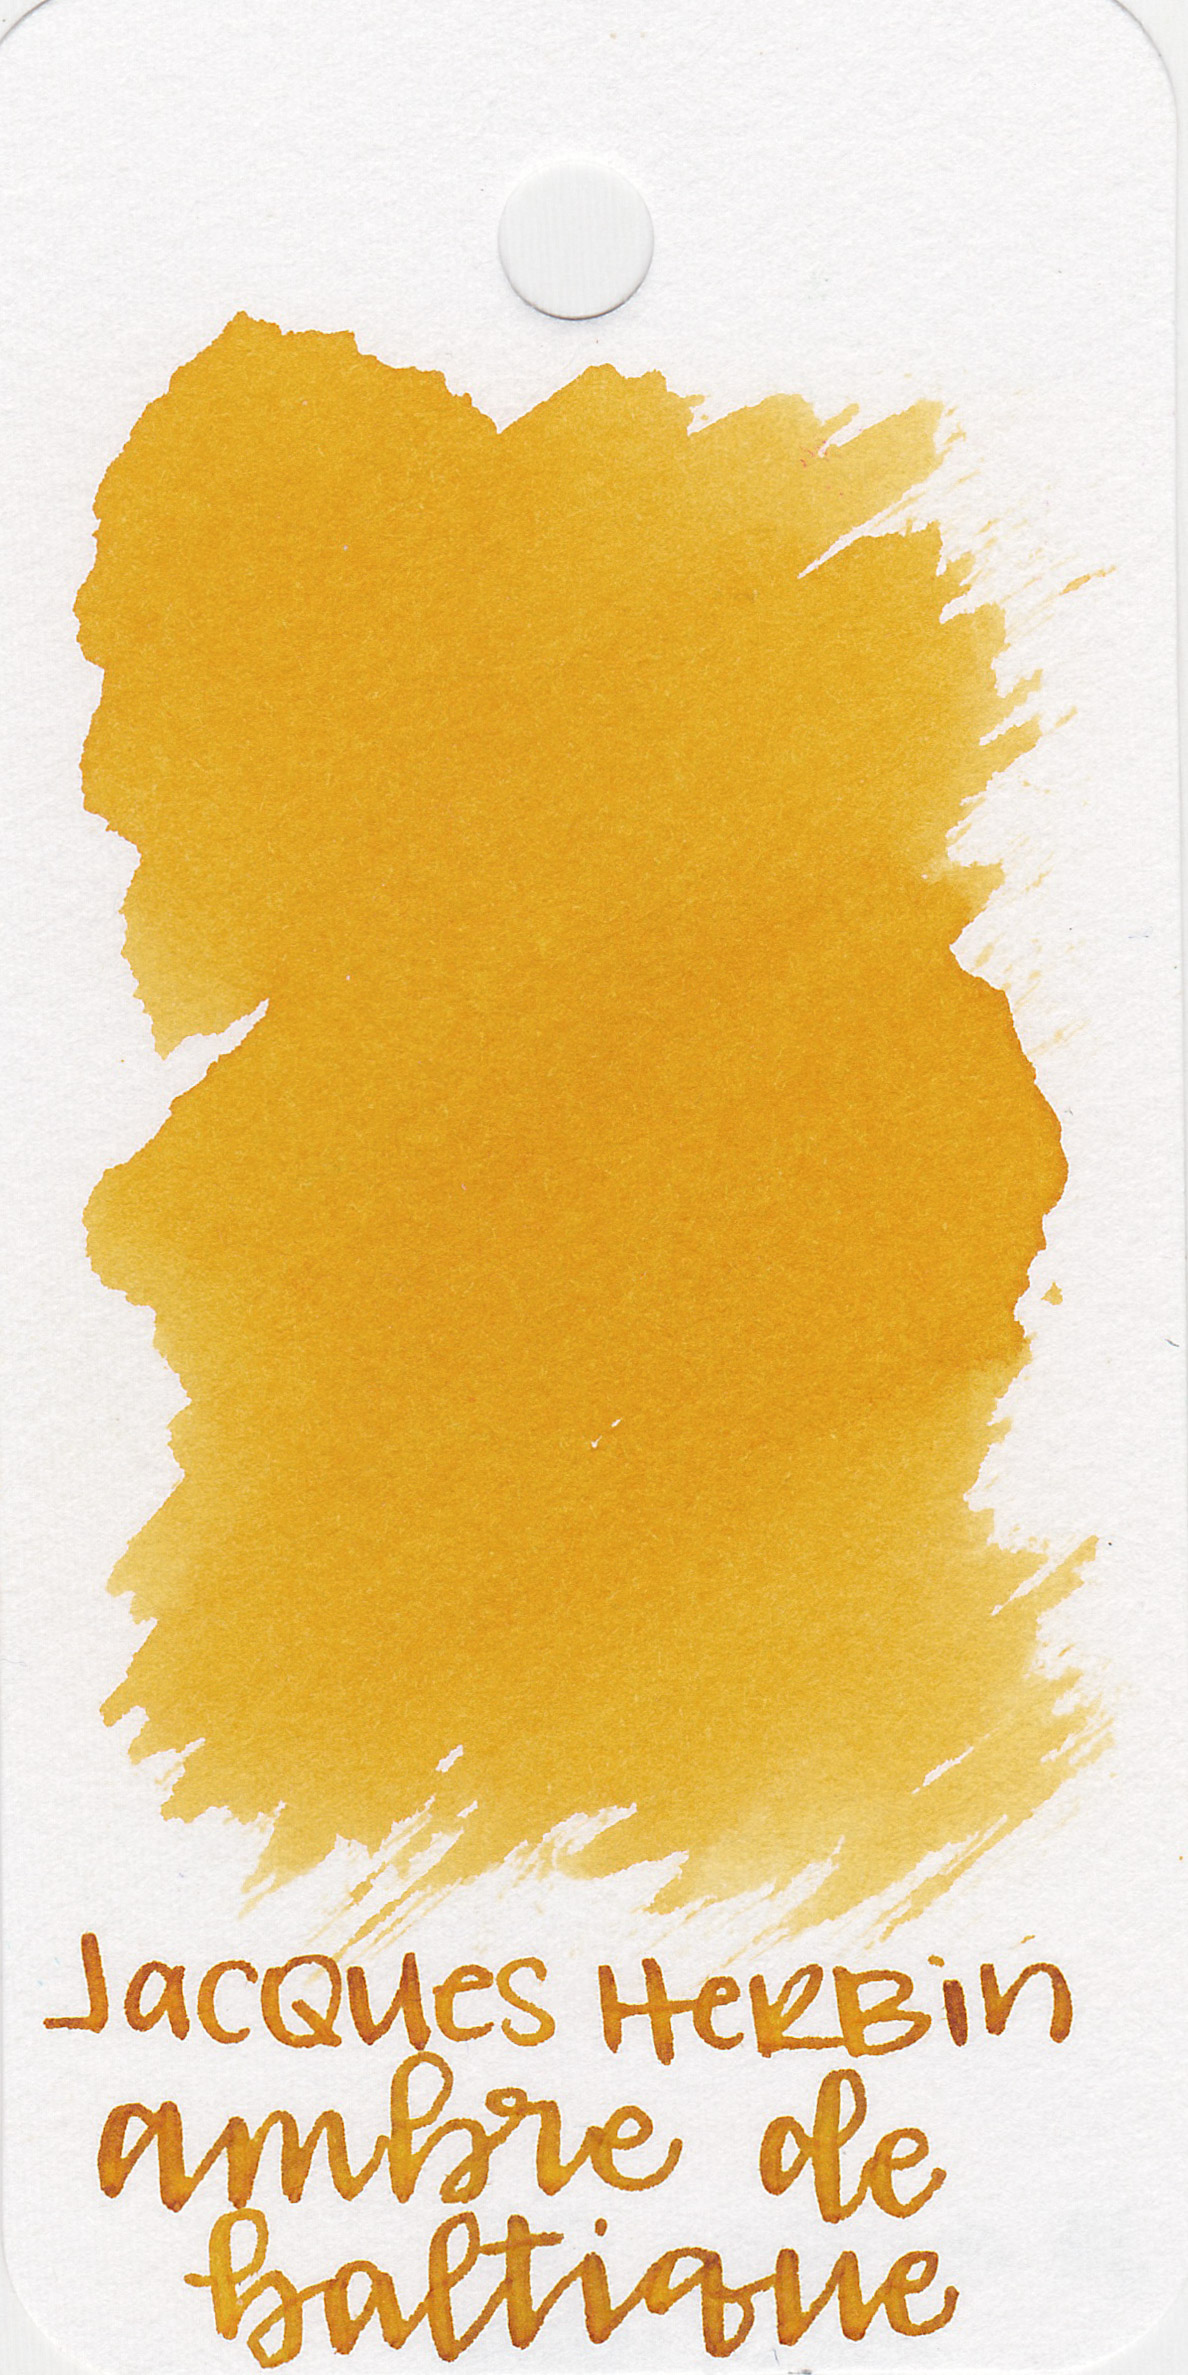 The color: - It's almost a mustard yellow, darker than the classic yellow but not quite gold.